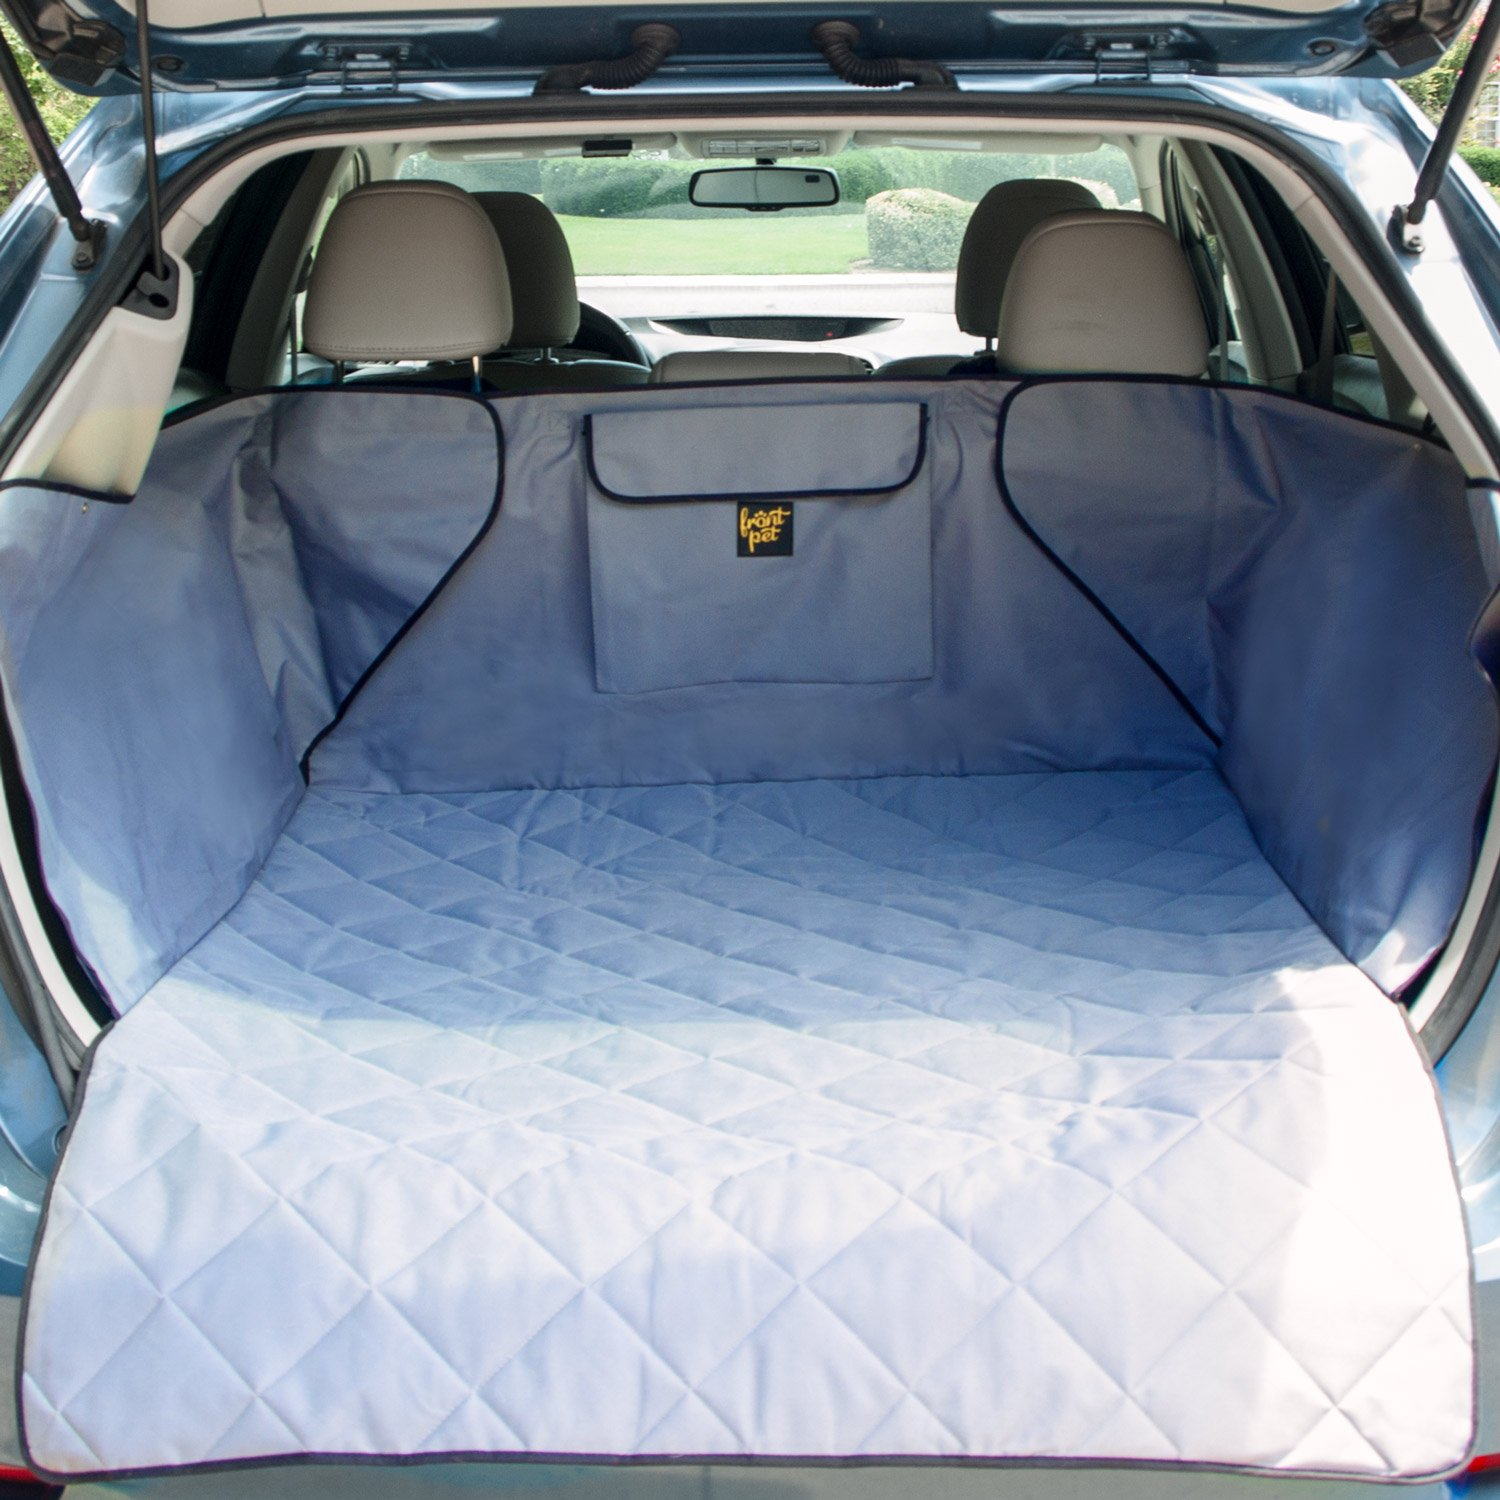 Grey FrontPet Quilted Dog Cargo Cover for SUV Universal Fit for Any Animal. Durable Liner Covers and Predects Your Vehicle